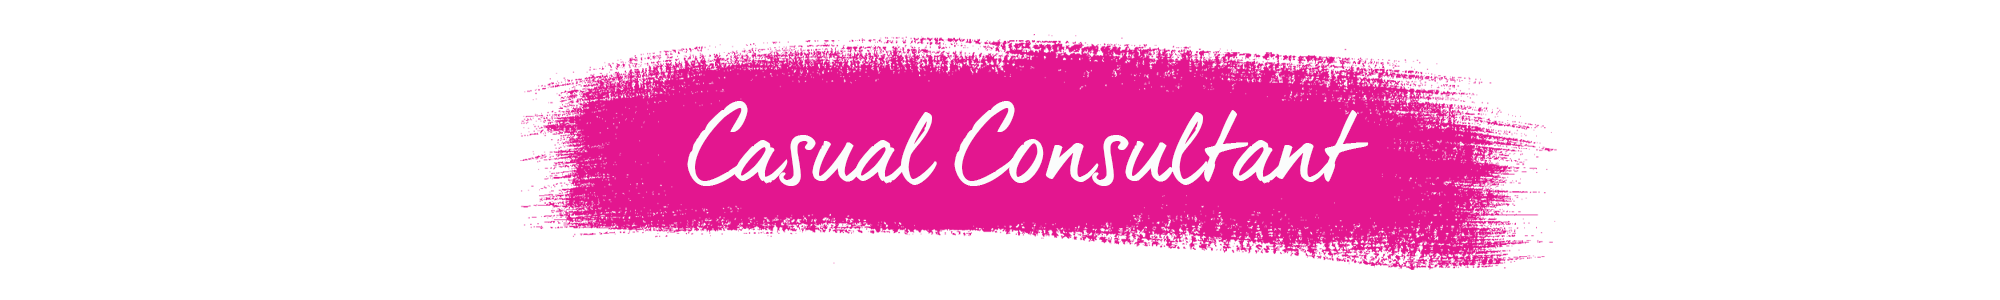 Casual Consultant Banner